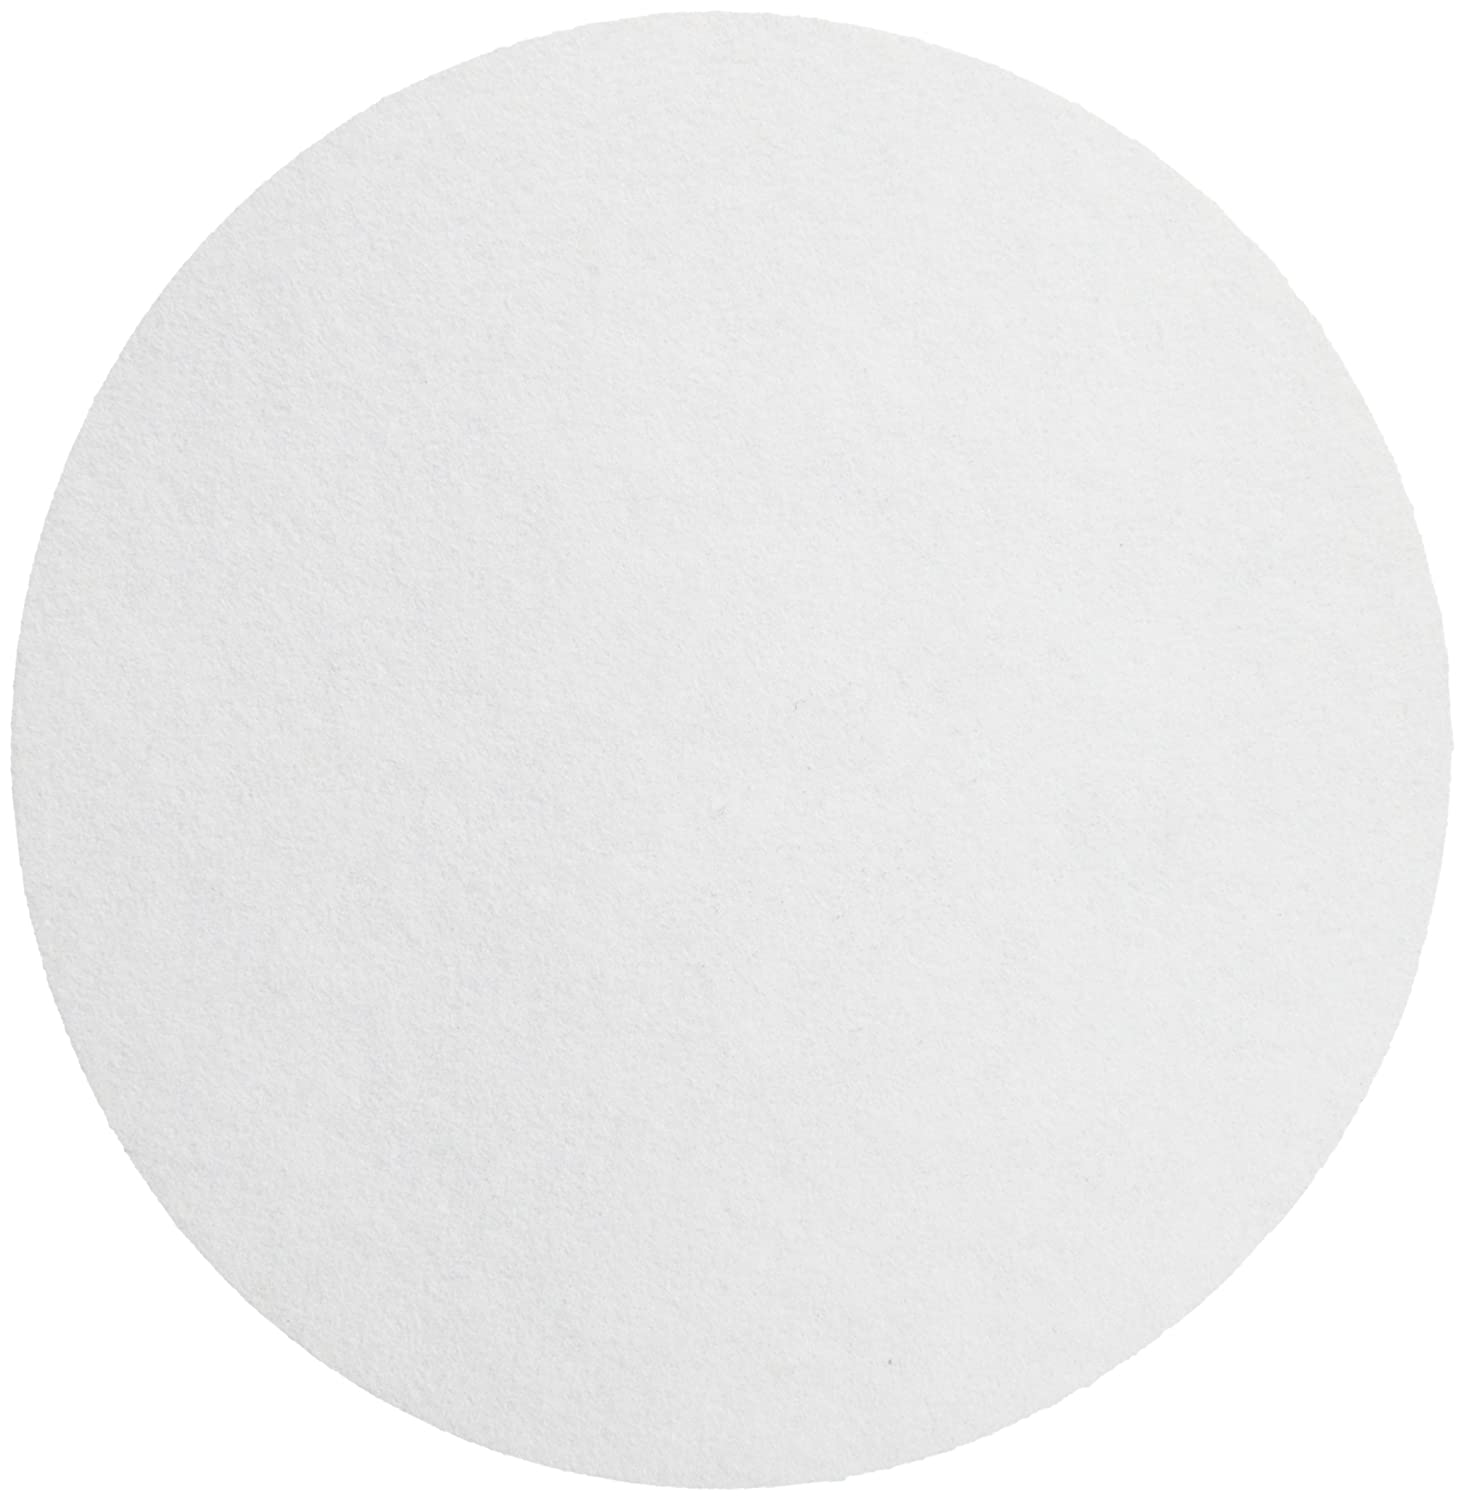 WHATMAN 1540185 quantitative filter paper ashless Grade 540 (Pack of 100) GE Healthcare F1255-9